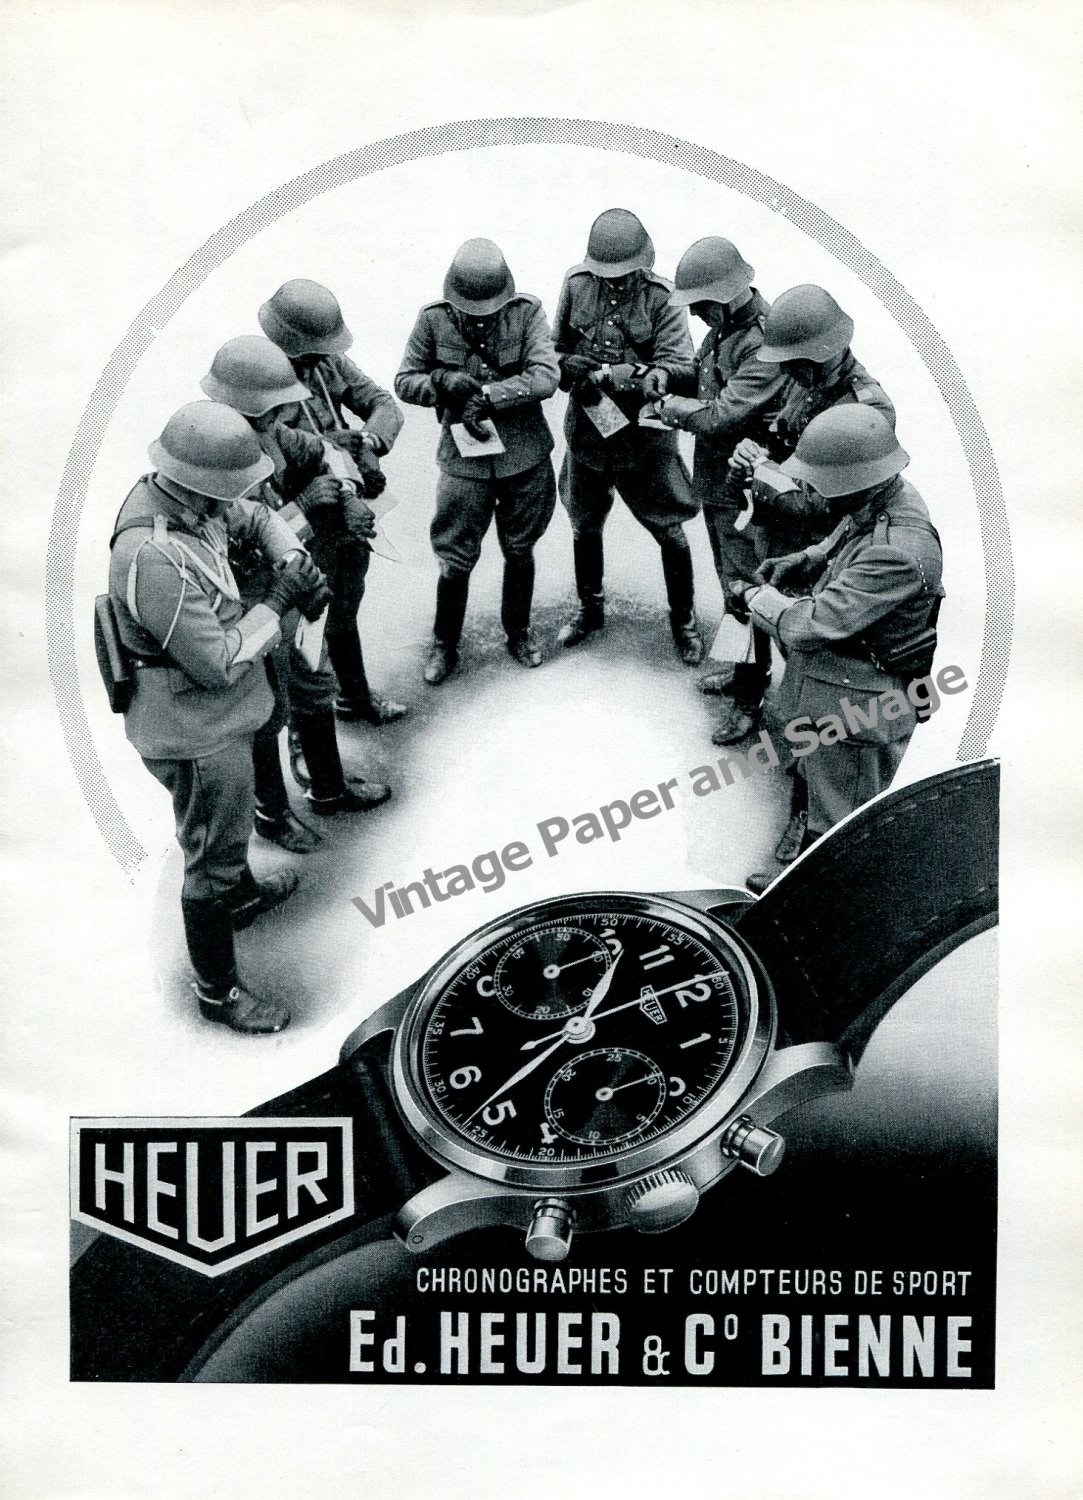 Vintage 1943 Heuer Watch Company Ed Heuer & Co SA Switzerland 1940s Swiss Ad Advert Suisse